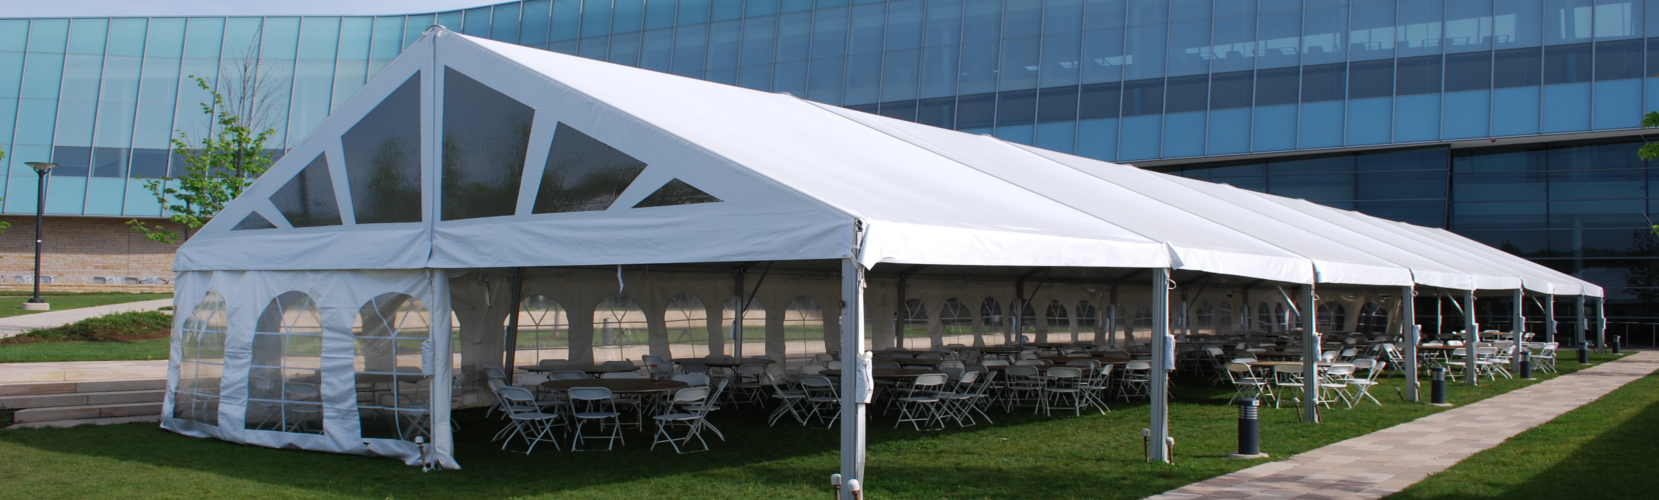 Call 031 700 1640 Today! & Tents for Sale Royal Tent | Best Tent Manufacturer Of Tents South ...